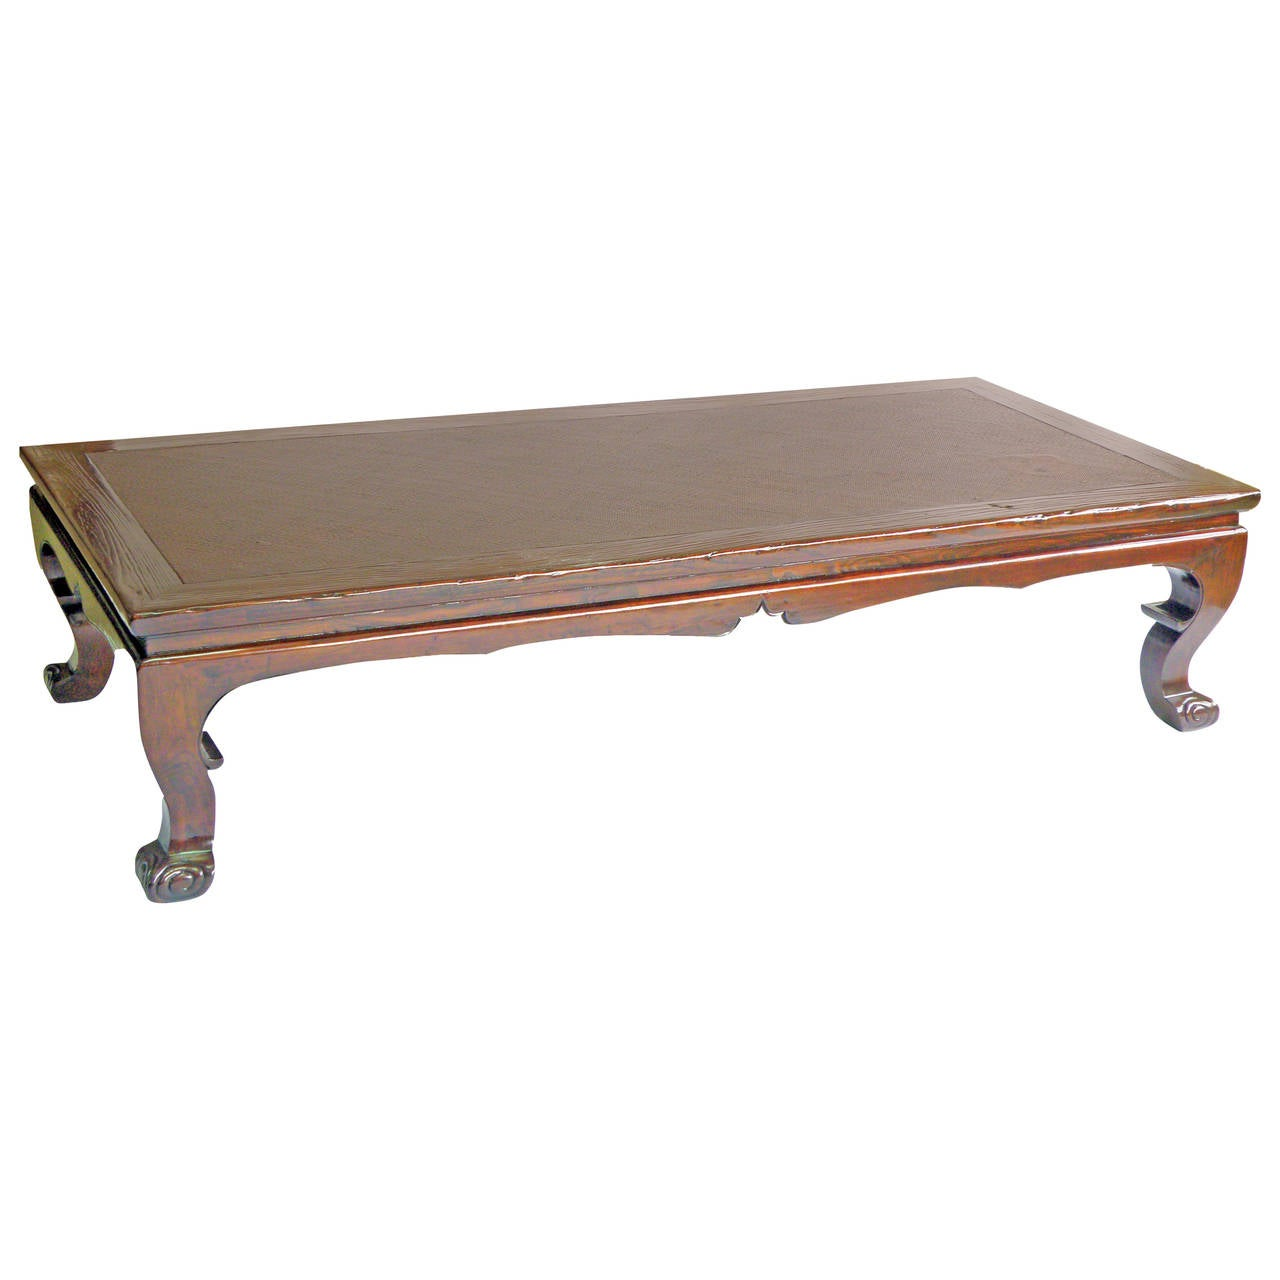 Large antique day bed low table or coffee table with cabriole legs chinoiserie for sale at 1stdibs Coffee table antique